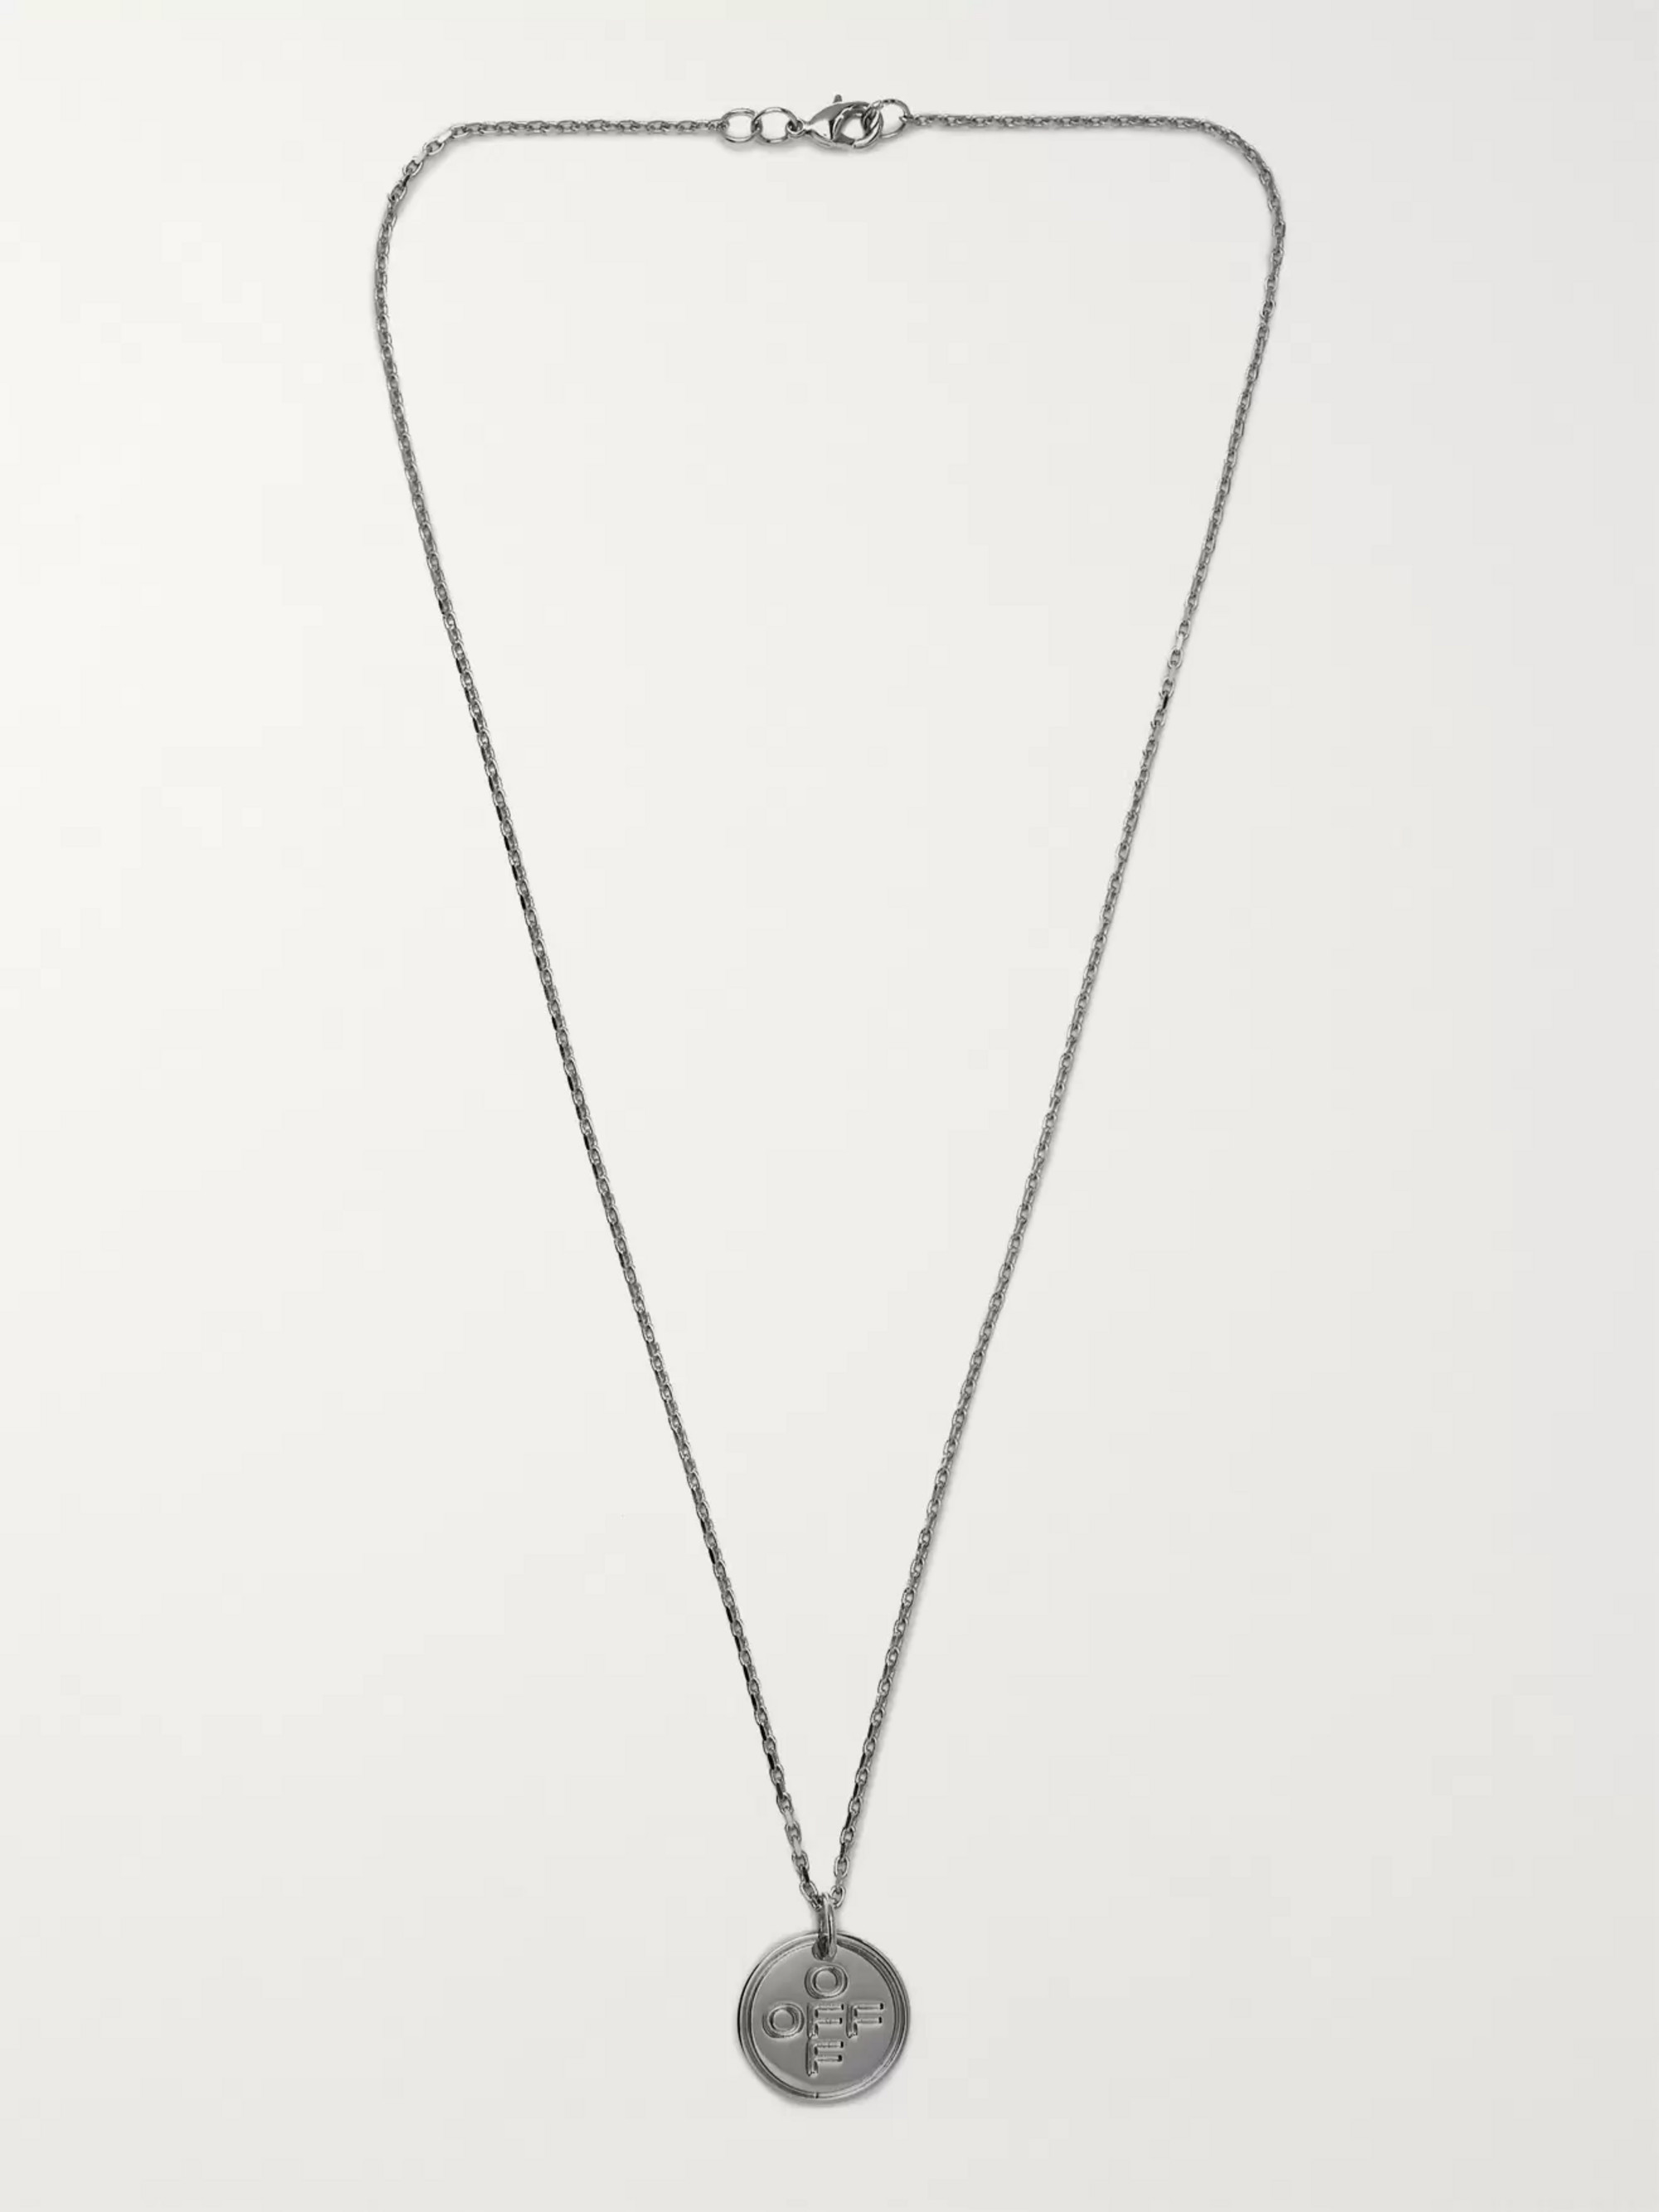 Off-White Silver-Tone Necklace